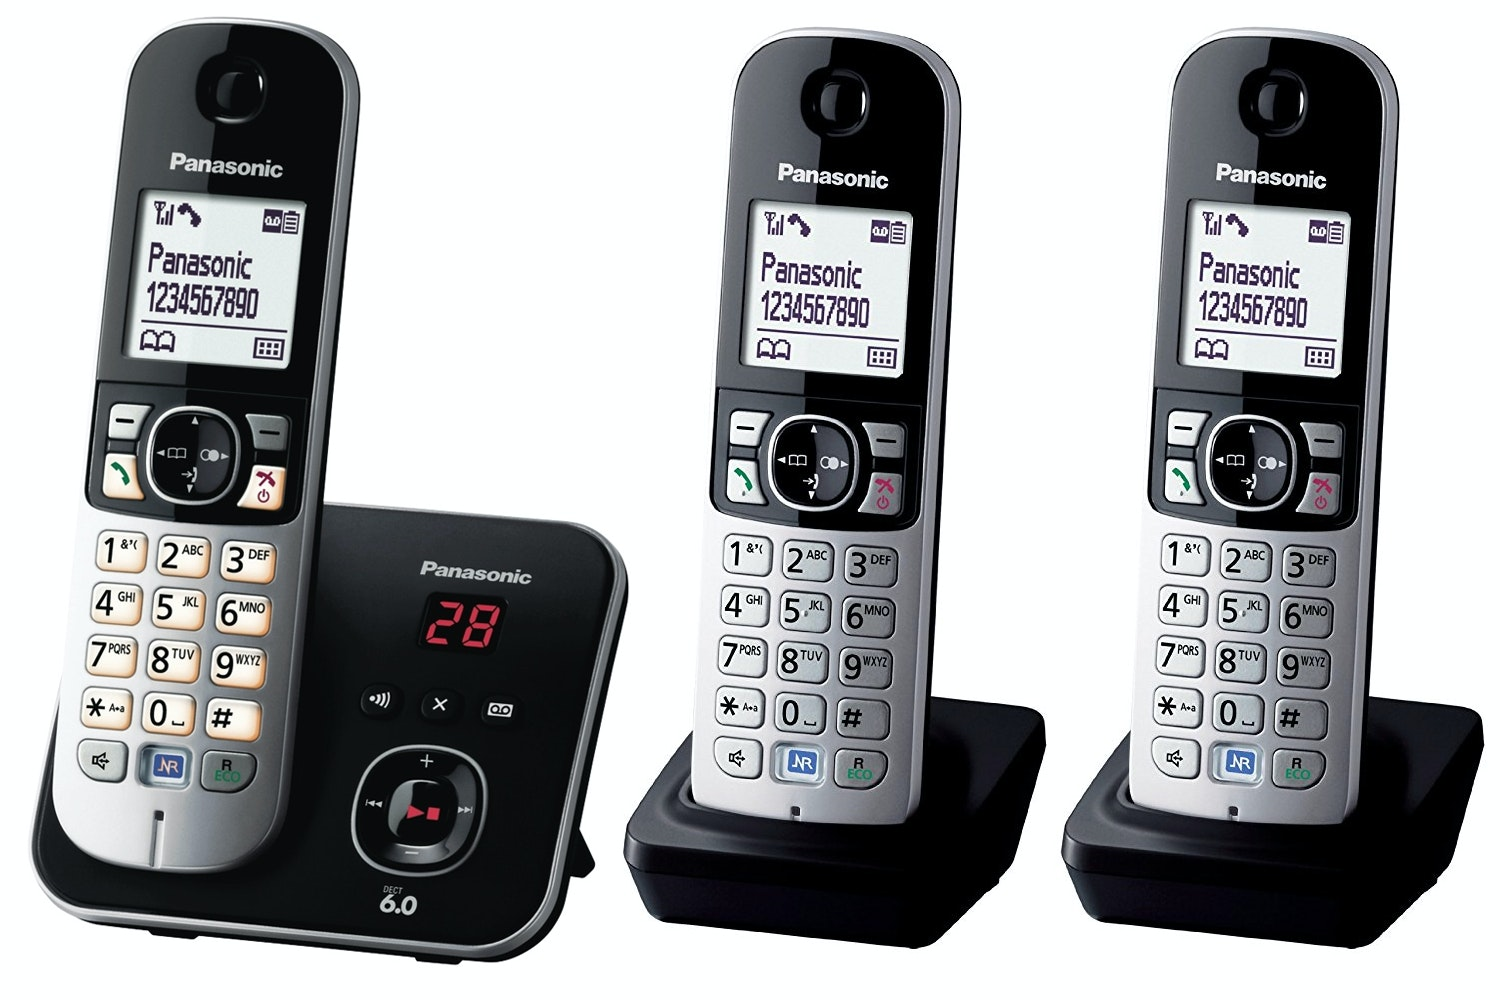 Panasonic 6823 Cordless Phone with Answering Machine | Trio